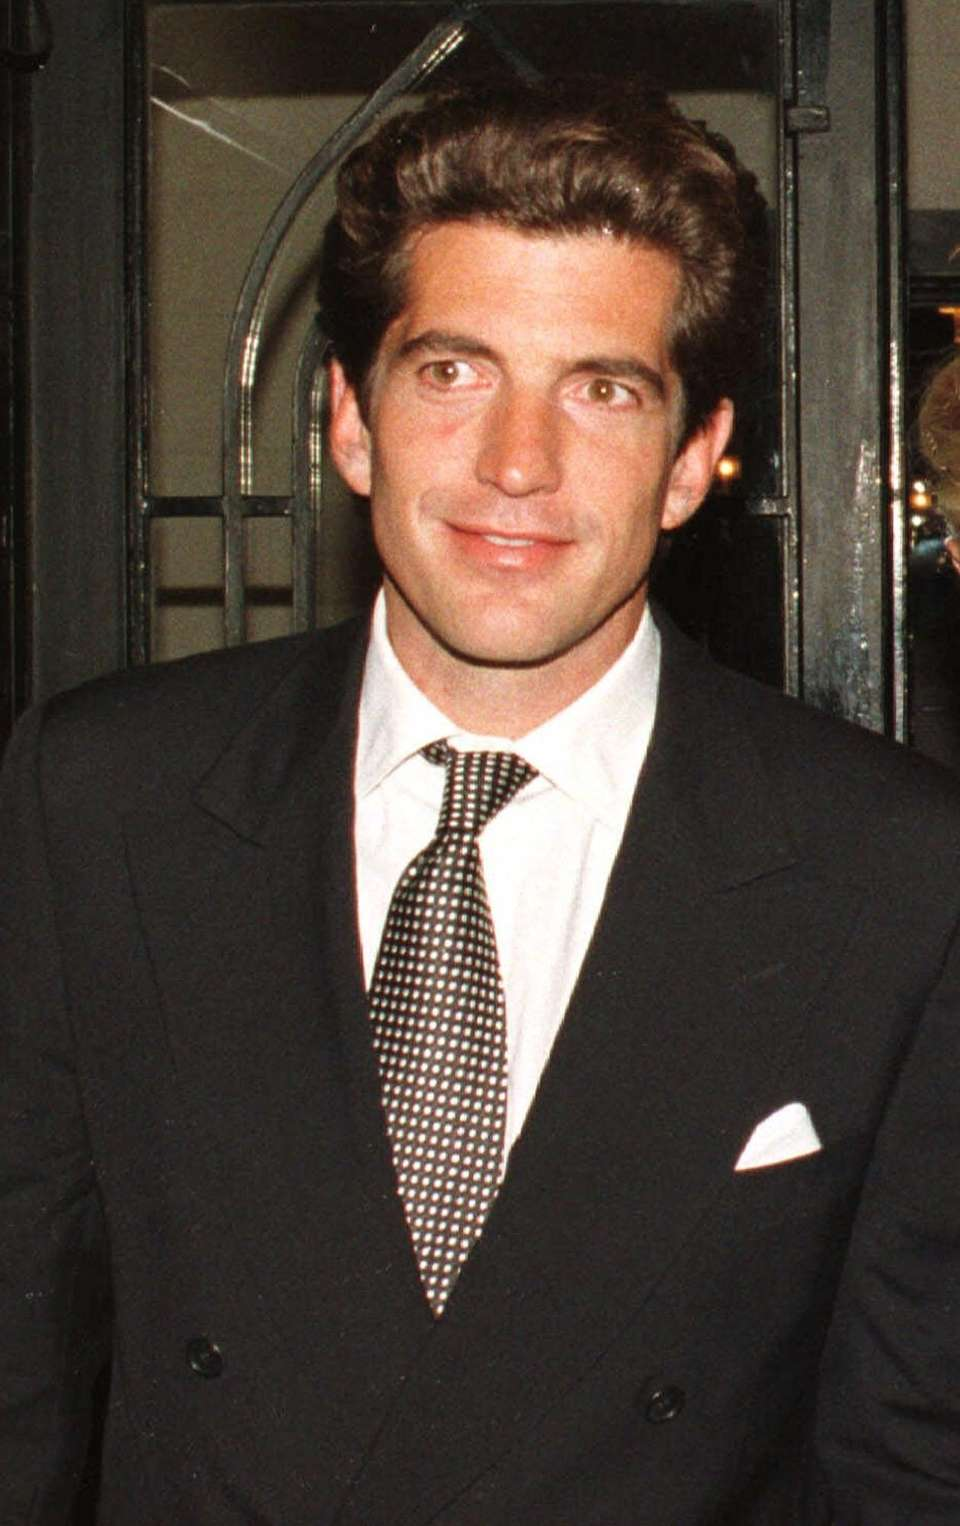 The late John F. Kennedy Jr. was named